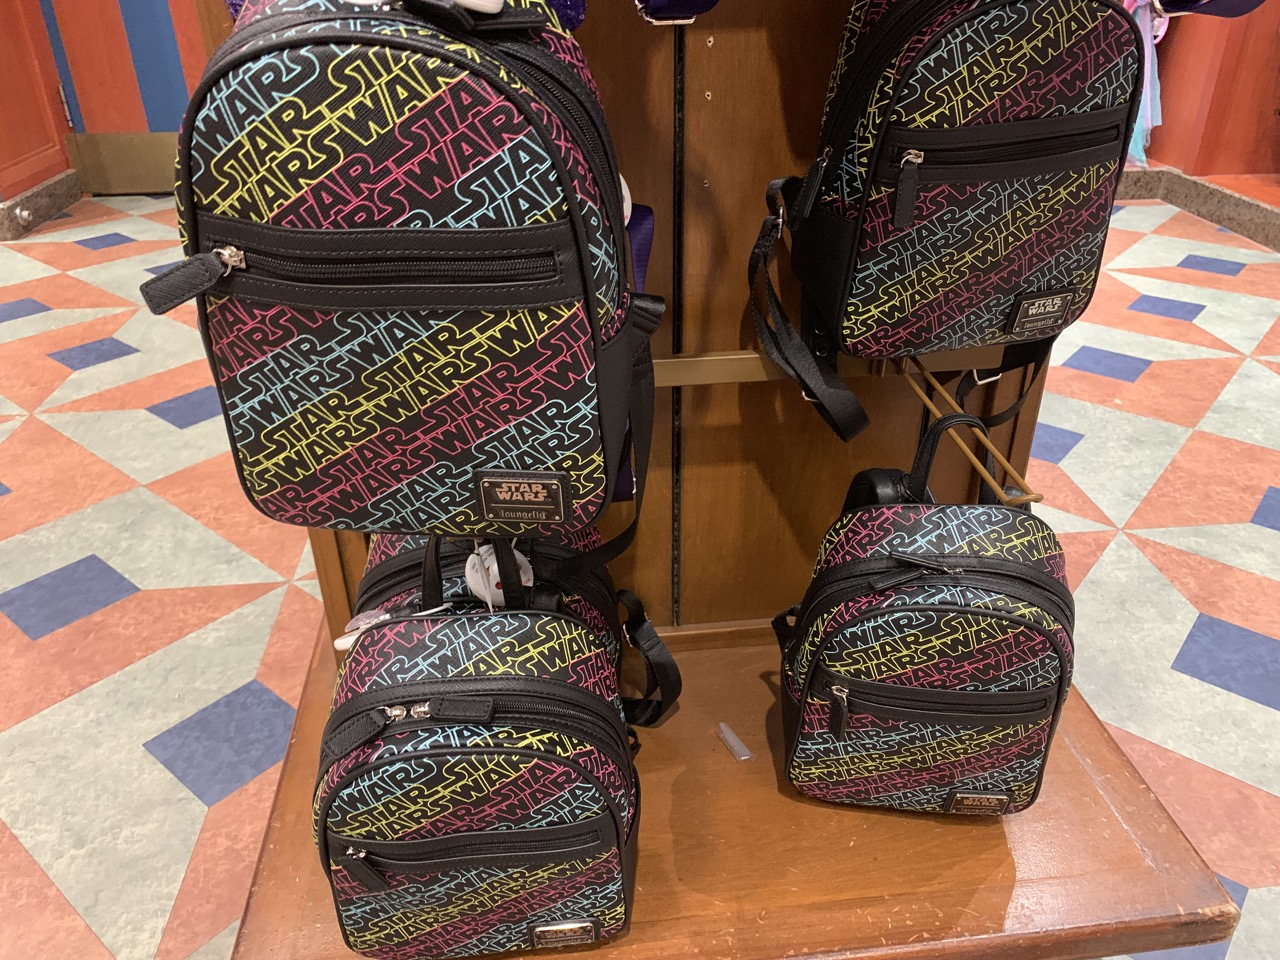 disney world trip report early summer 2019 day two merchandise 16.jpeg